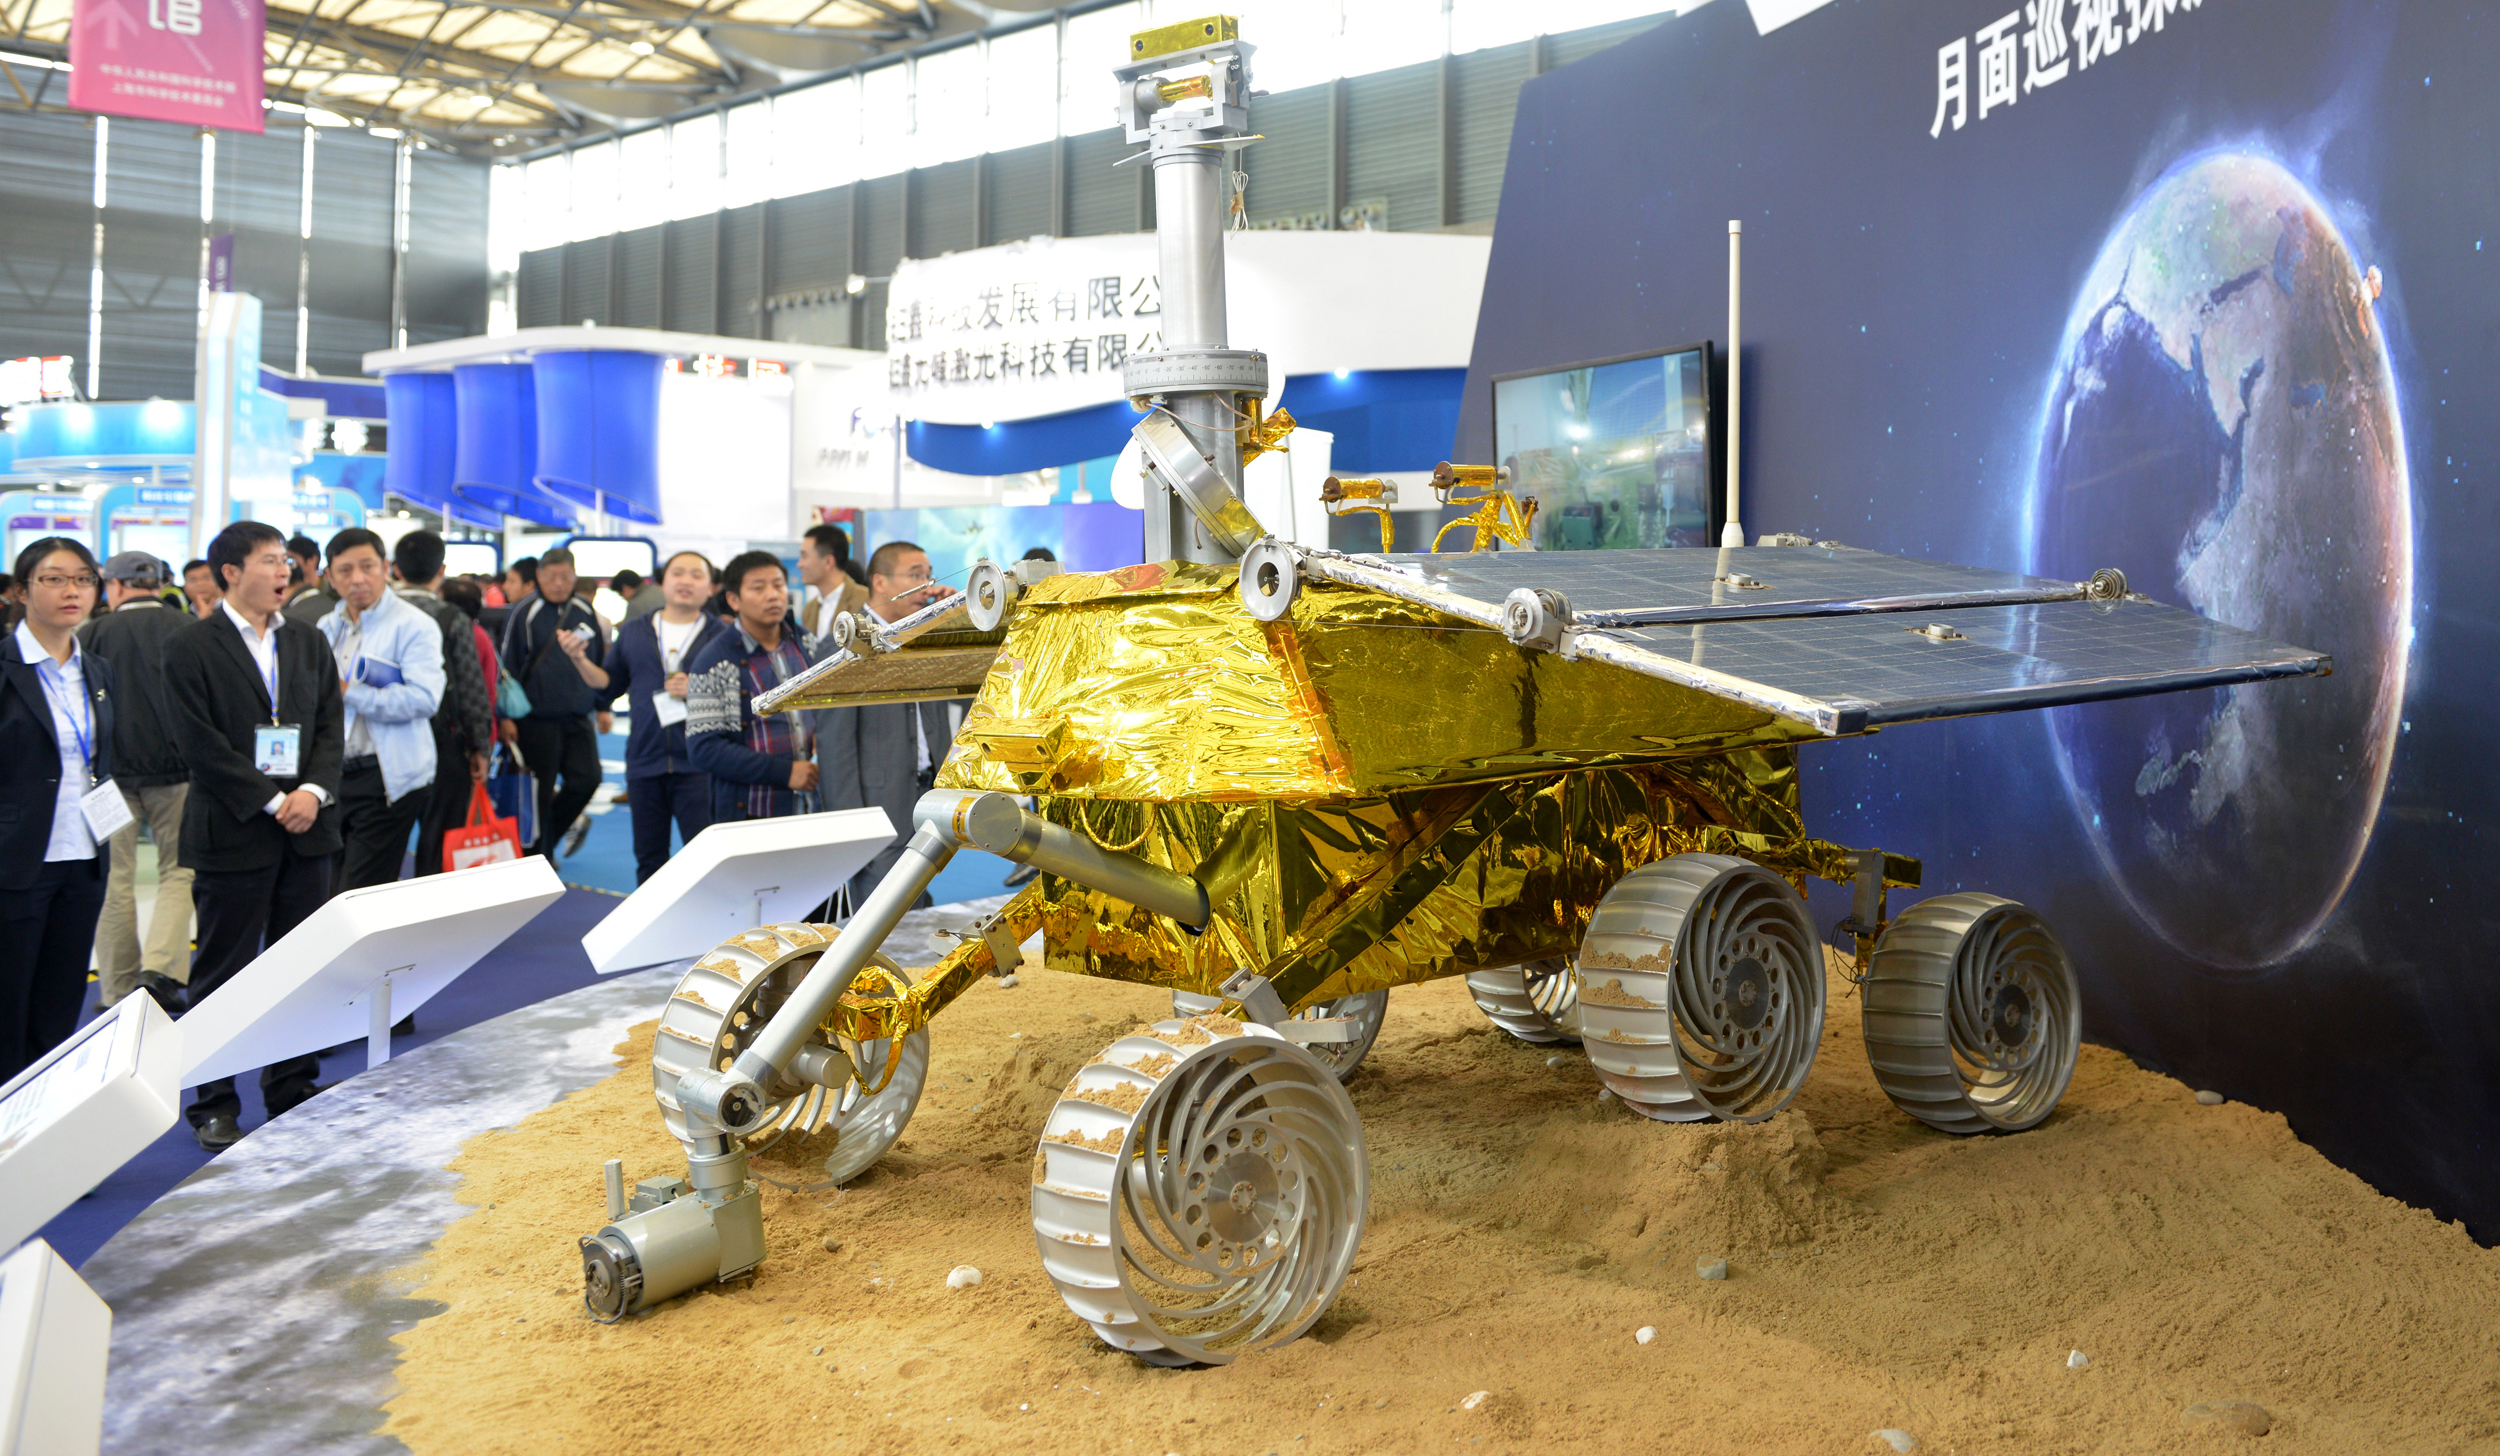 A model of China's moon rover, which recently malfunctioned on the moon, is shown in Shanghai on Nov. 5, 2013. Europe is shown being nuked in an artistic rendition of the Earth used in the display. (Peter Parks/AFP/Getty Images)